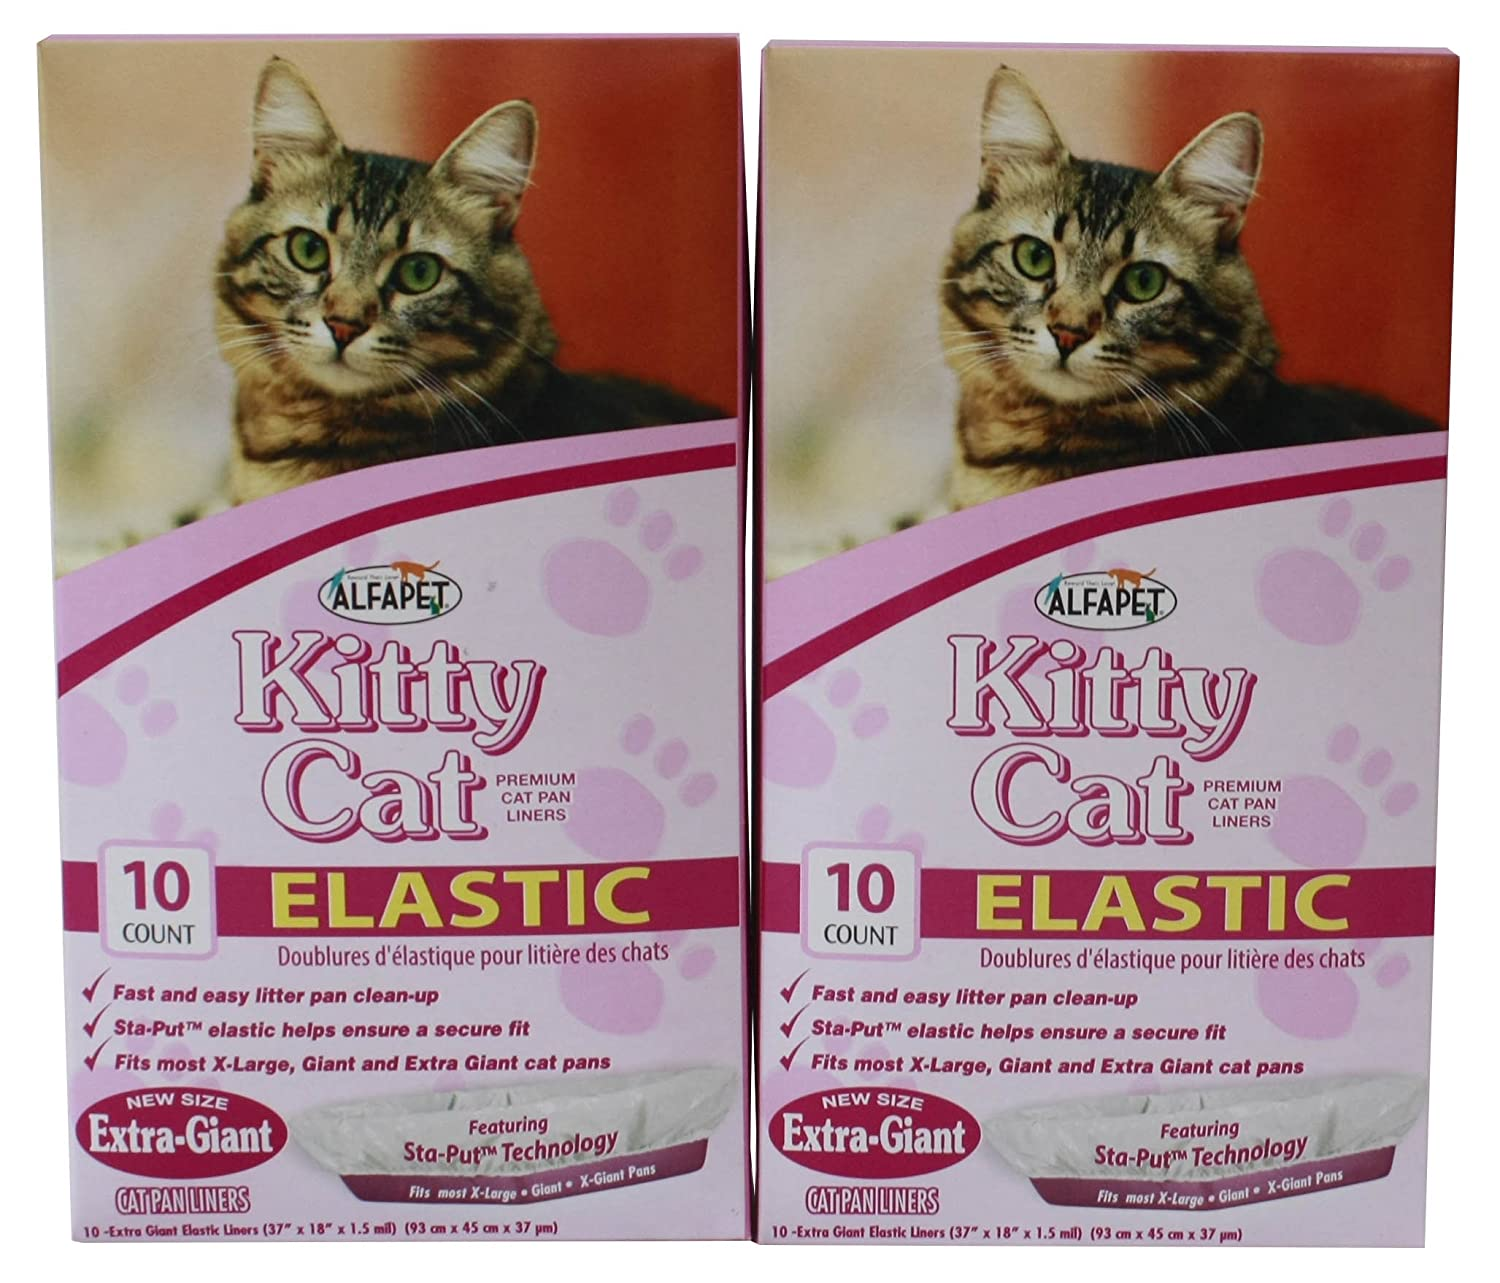 AlfaPet Kitty Cat EXTRA-GIANT Elastic Sta-Put Litter Box Liners 10 count (Pack of 2)